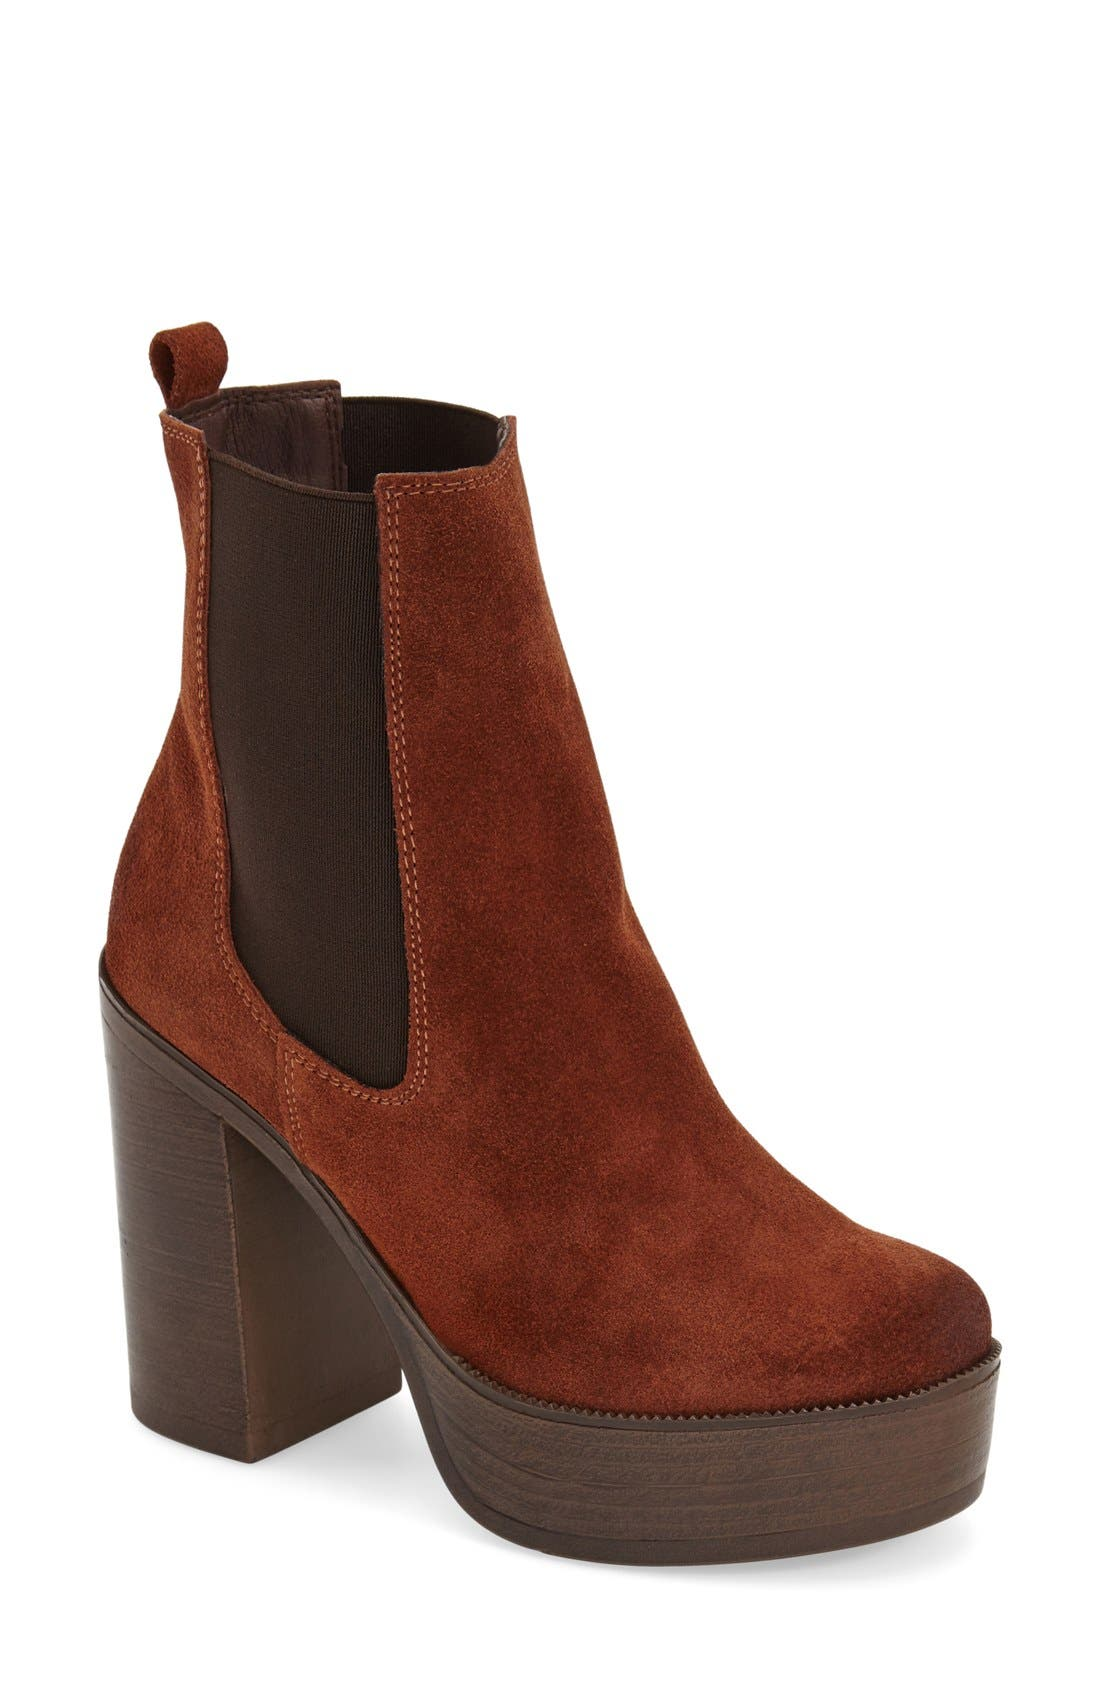 Main Image - Topshop 'Holly '70s' Chunky Heel Ankle Boot (Women)